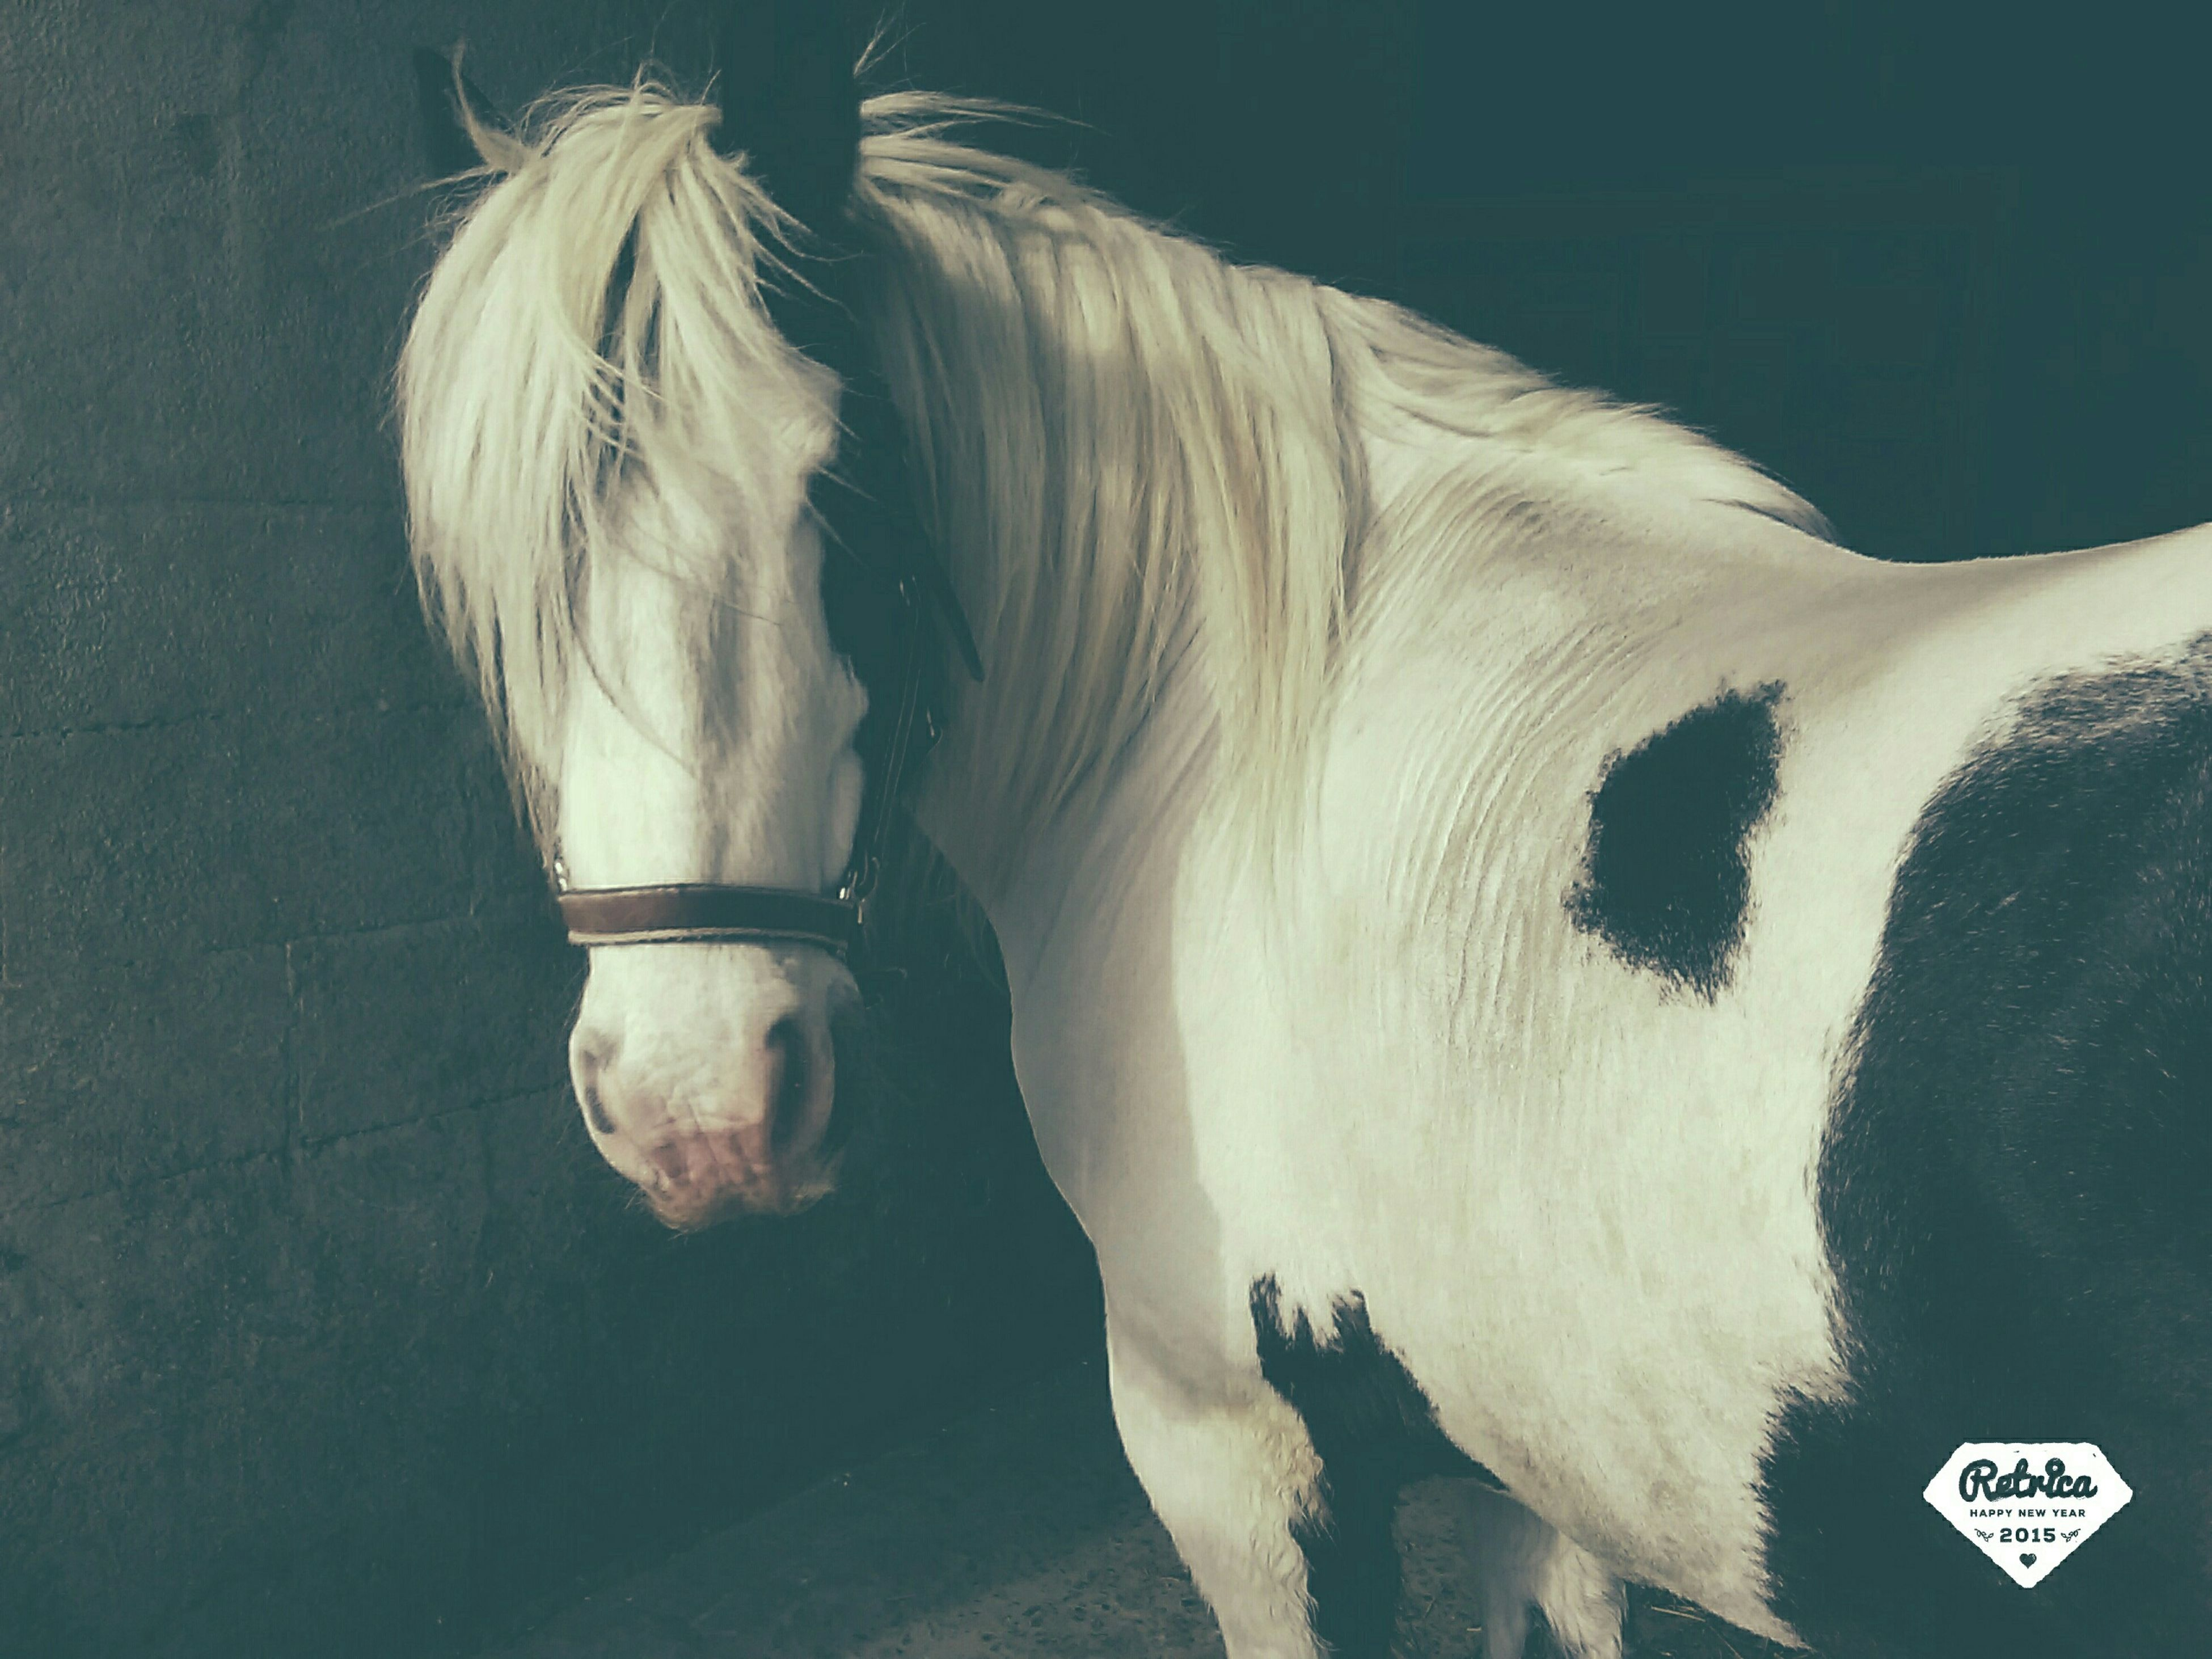 animal themes, domestic animals, mammal, one animal, horse, livestock, white color, standing, herbivorous, dog, two animals, animal head, side view, animal hair, day, close-up, outdoors, working animal, no people, animal body part